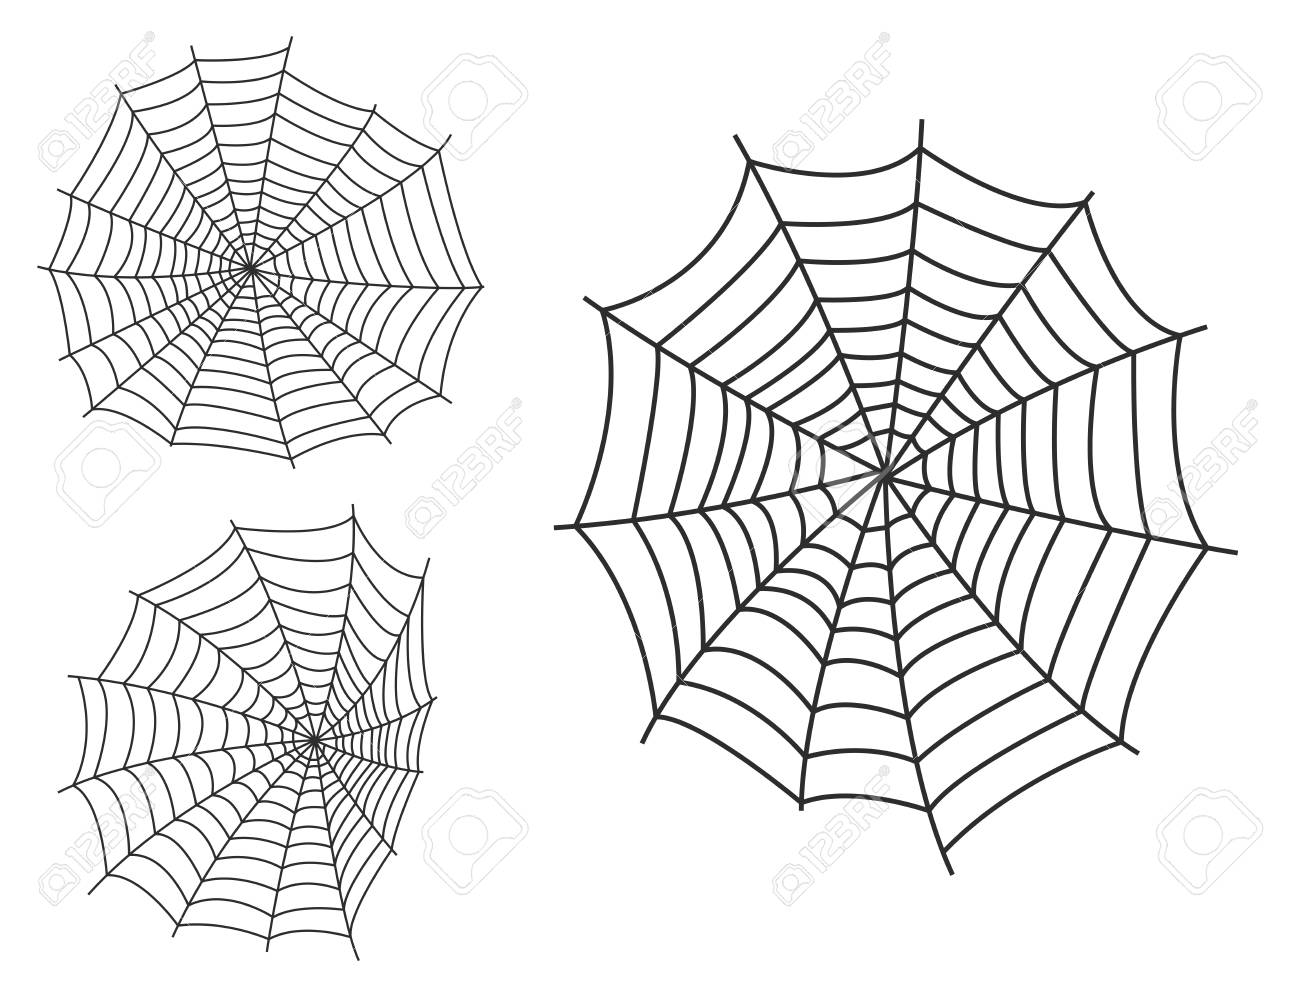 Spider web silhouette arachnid fear graphic flat scary animal design nature insect danger horror vector icon. - 87062319